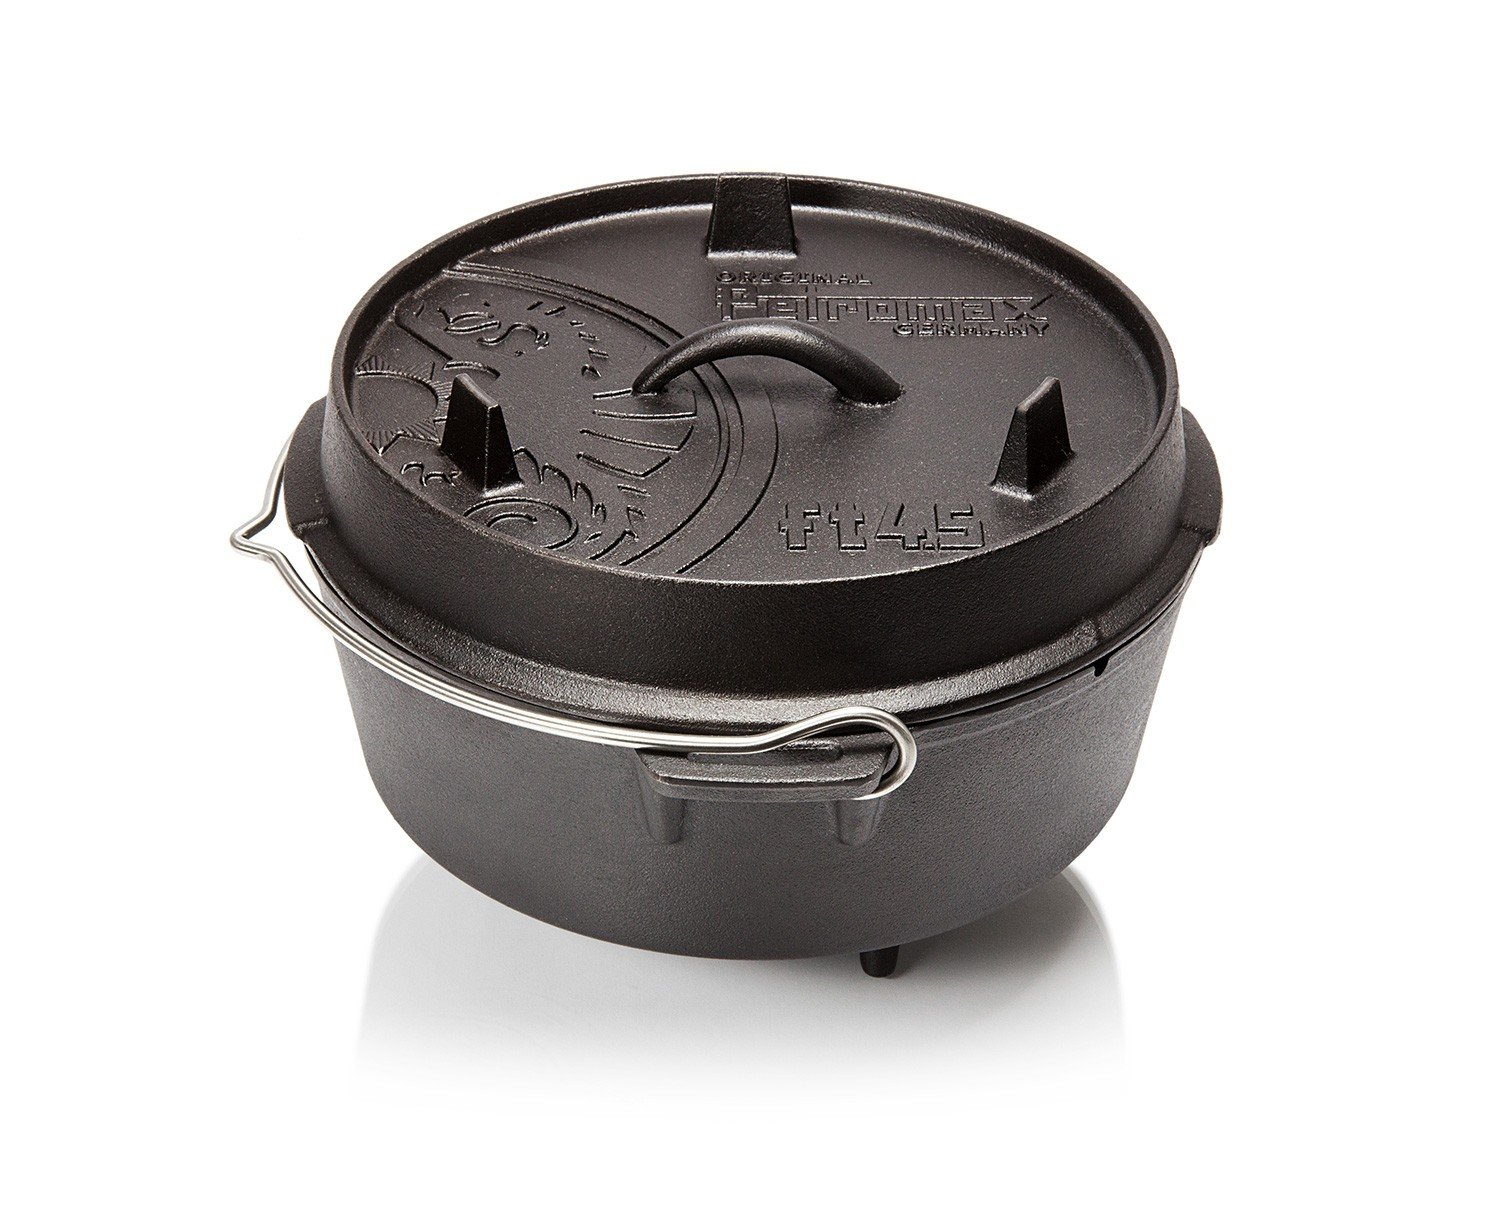 Petromax Cast Iron Dutch Oven - 3.7 Qt